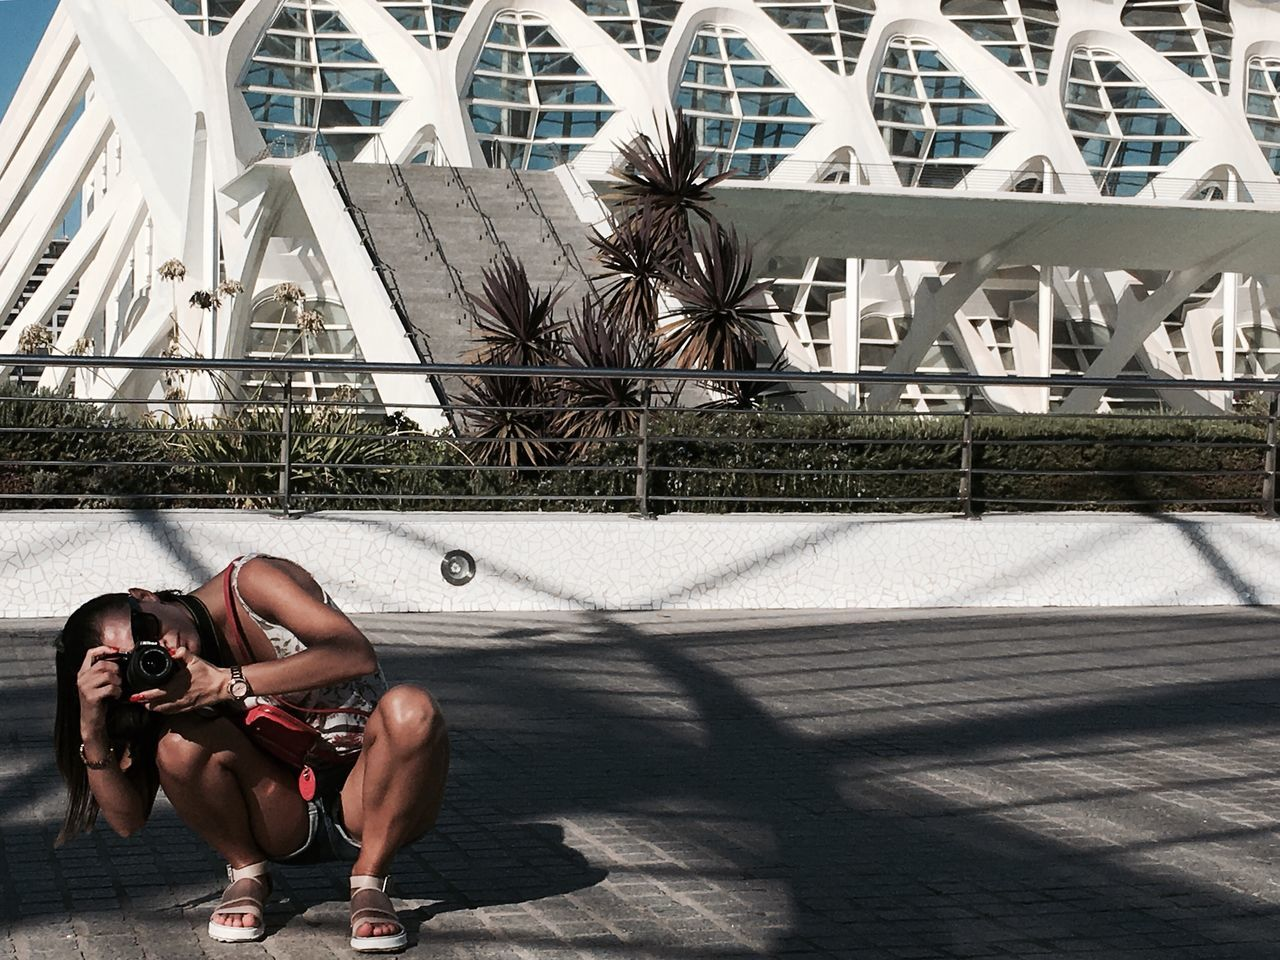 Woman Crouching On Walkway While Photographing During Sunny Day